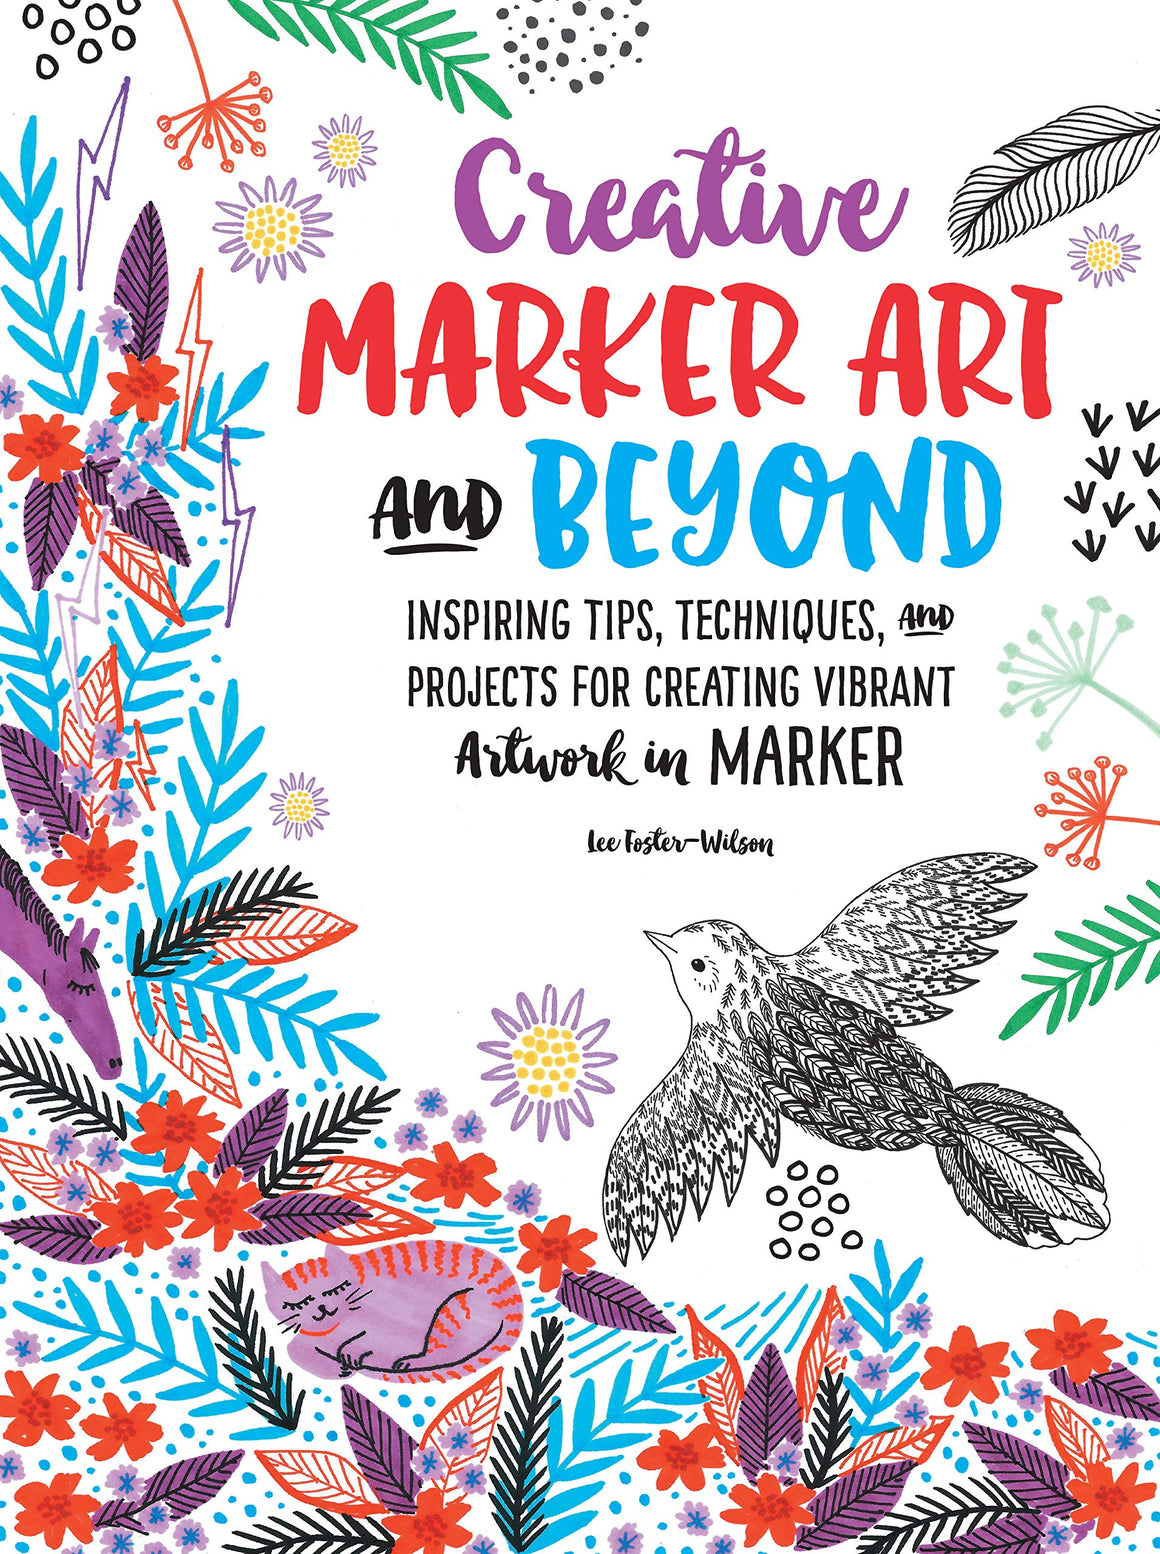 Creative Marker Art And Beyond - Art Techniques Book